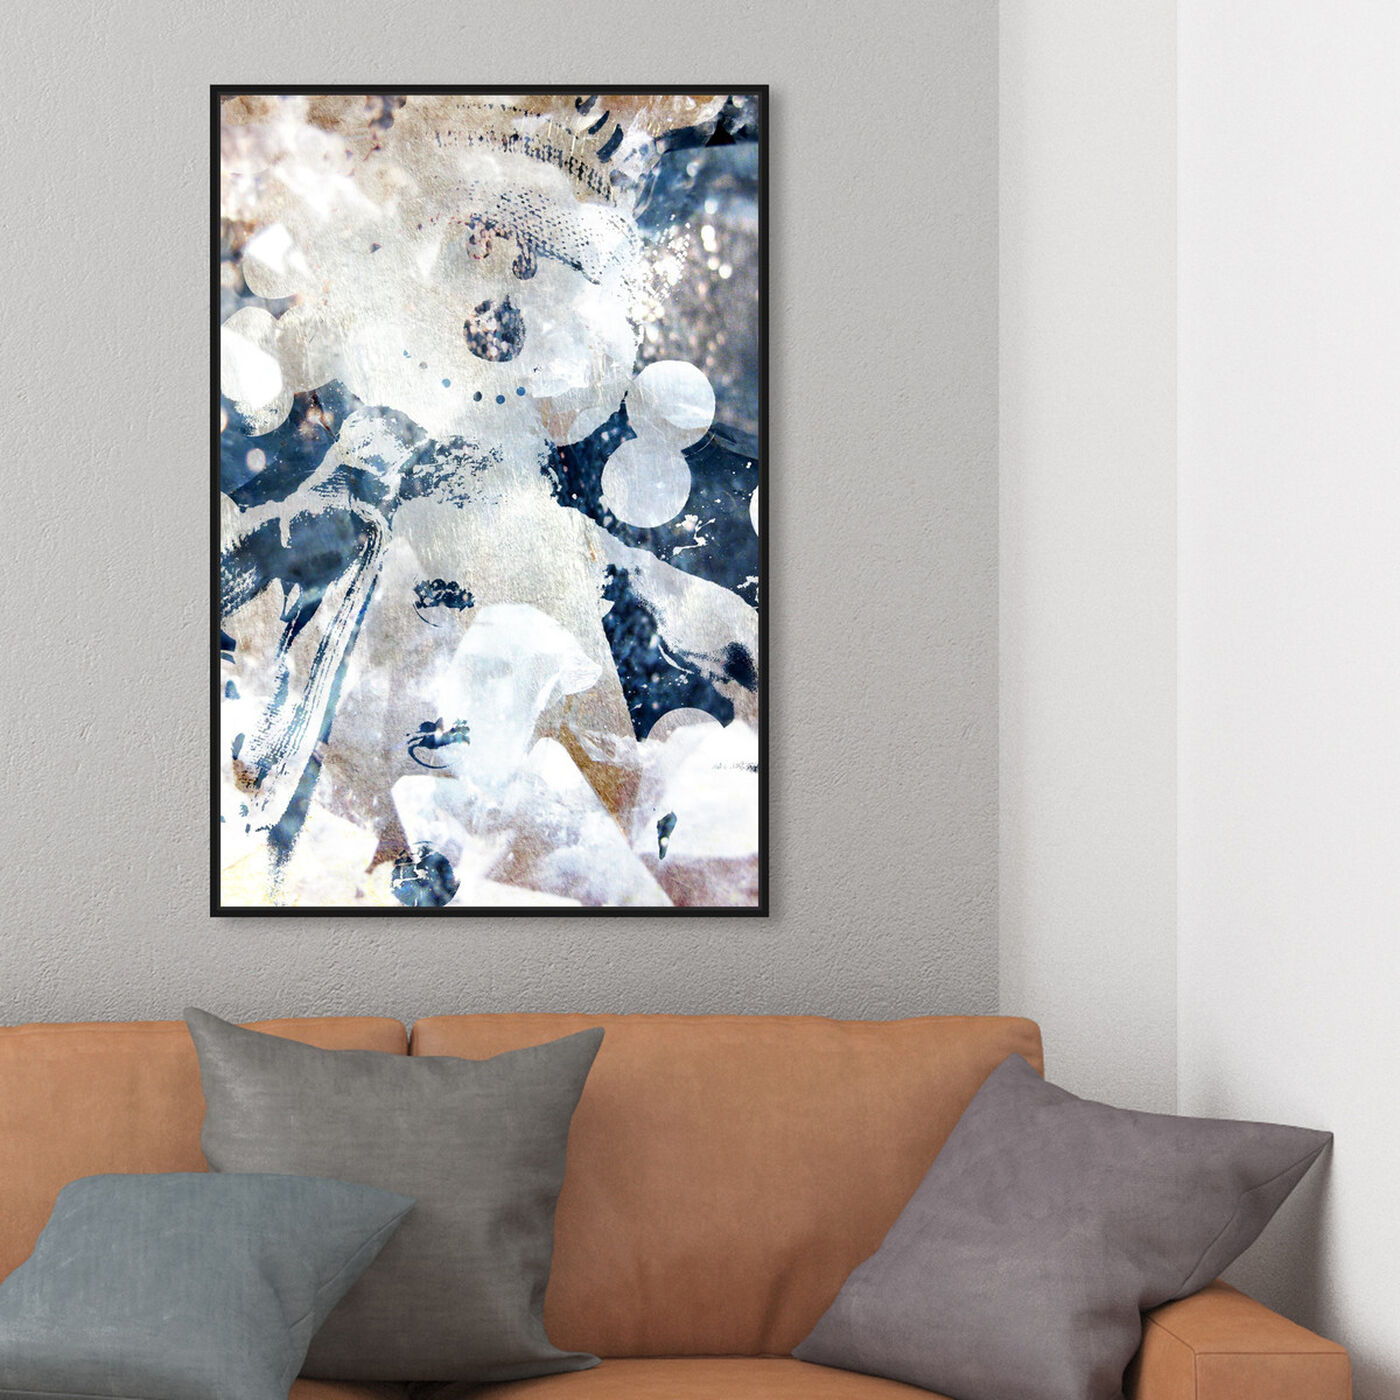 Hanging view of Snocool featuring abstract and textures art.